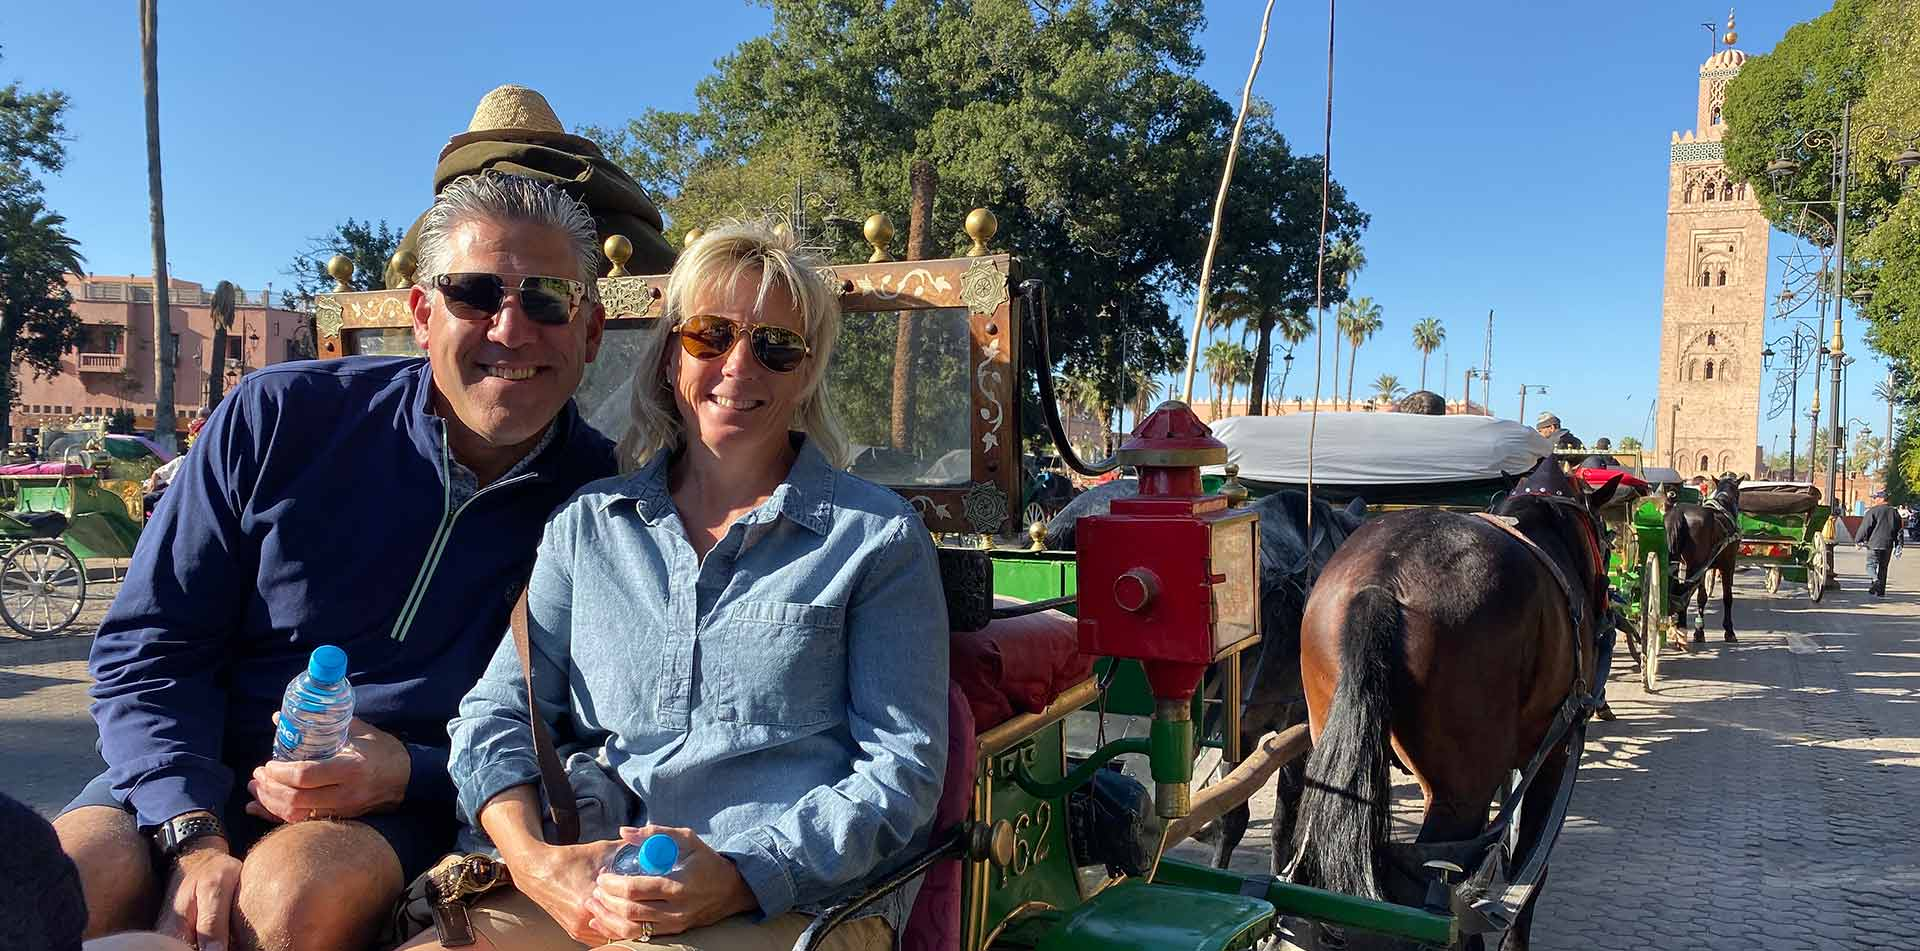 Couple on a carriage ride